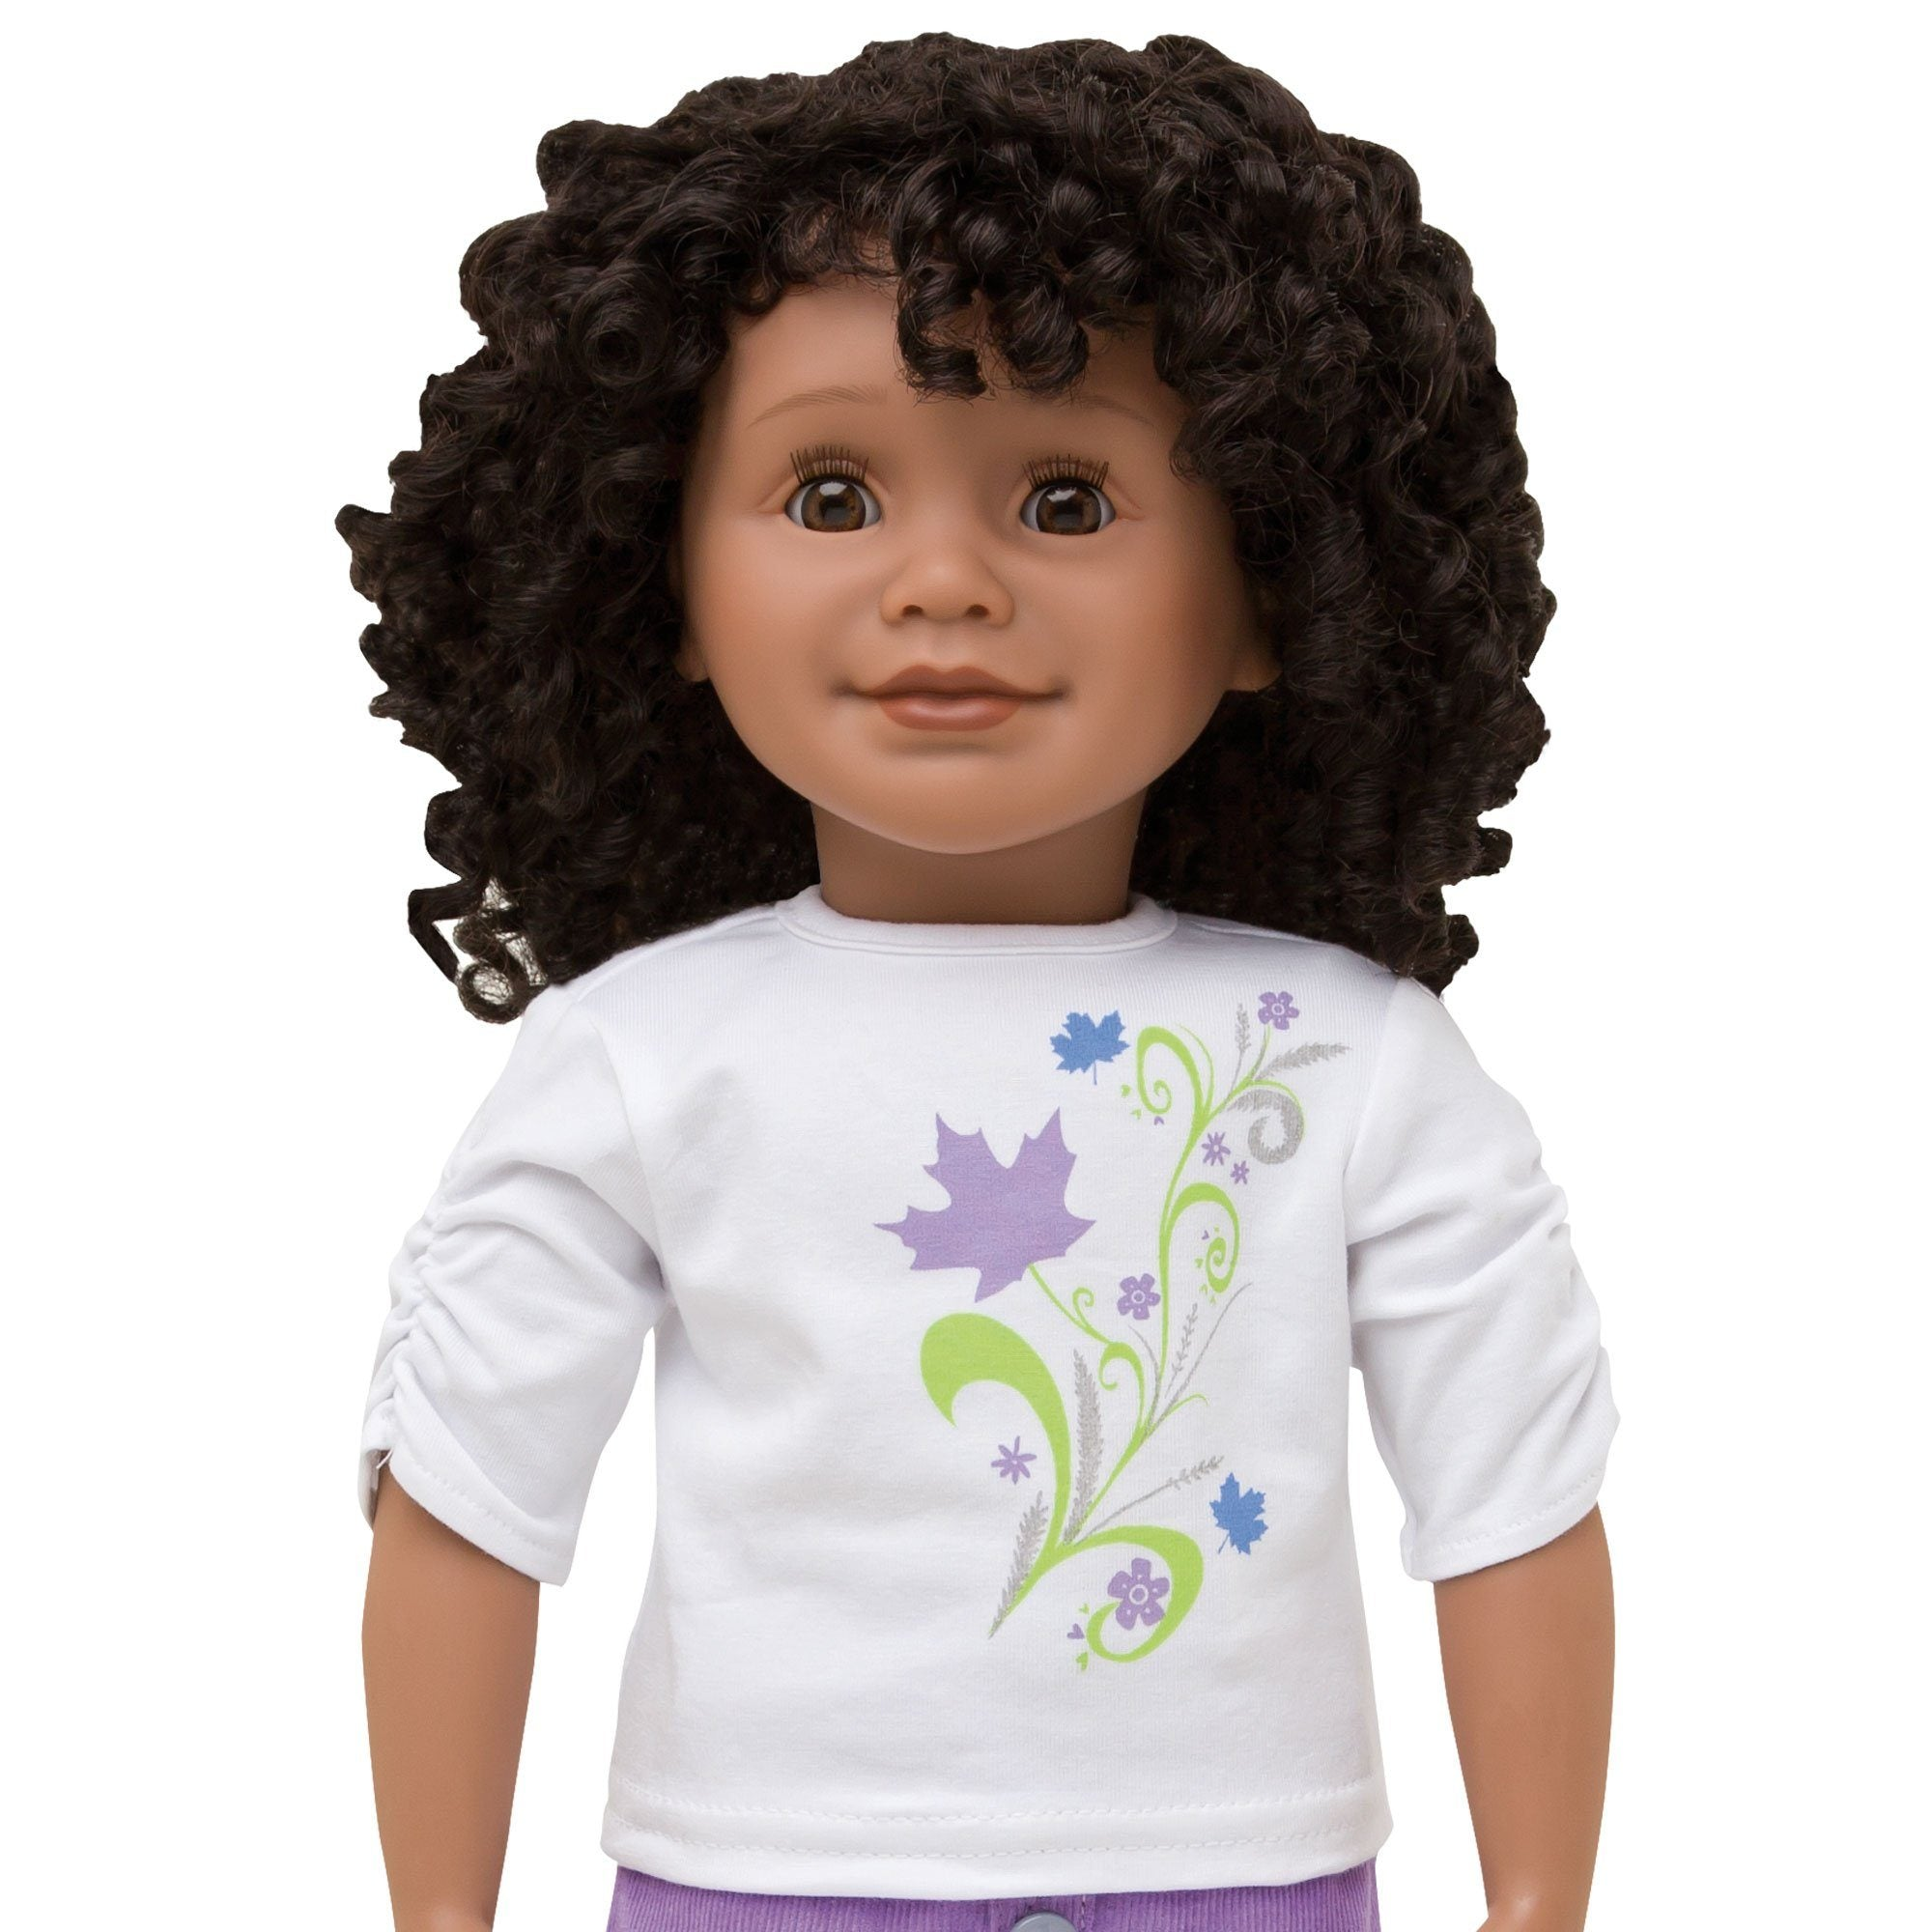 Kmf11 Maplelea Friend With Short Curly Black Brown Hair Medium